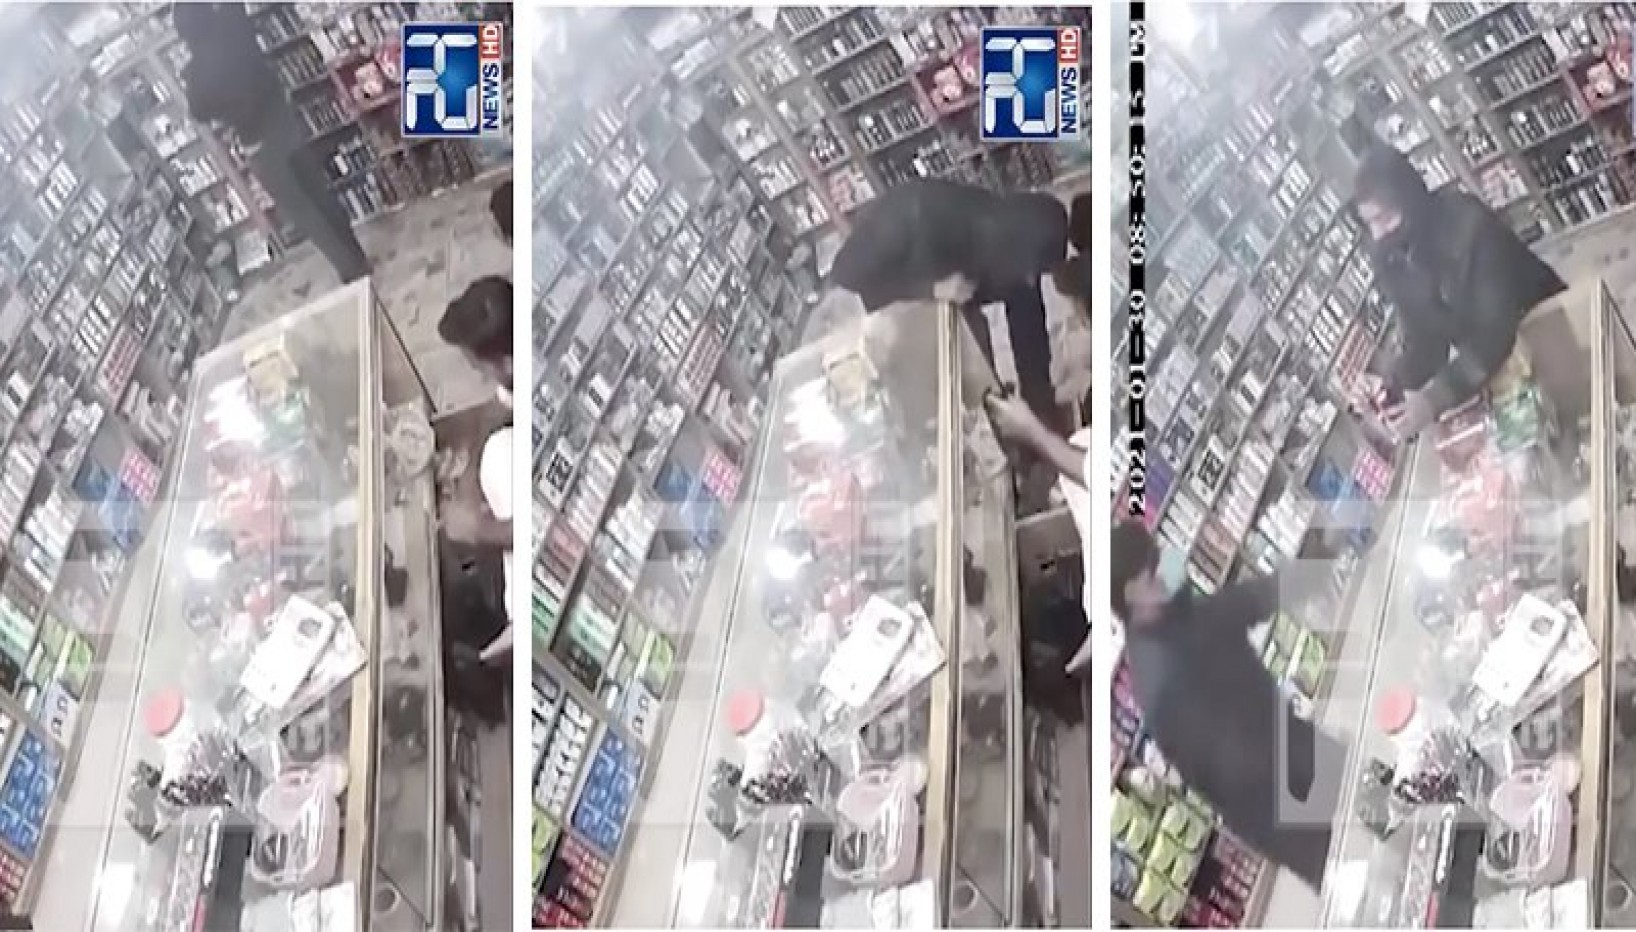 This Strangely Polite Conversation Between A Pakistani Thief And A Shopkeeper Has The Internet Amused